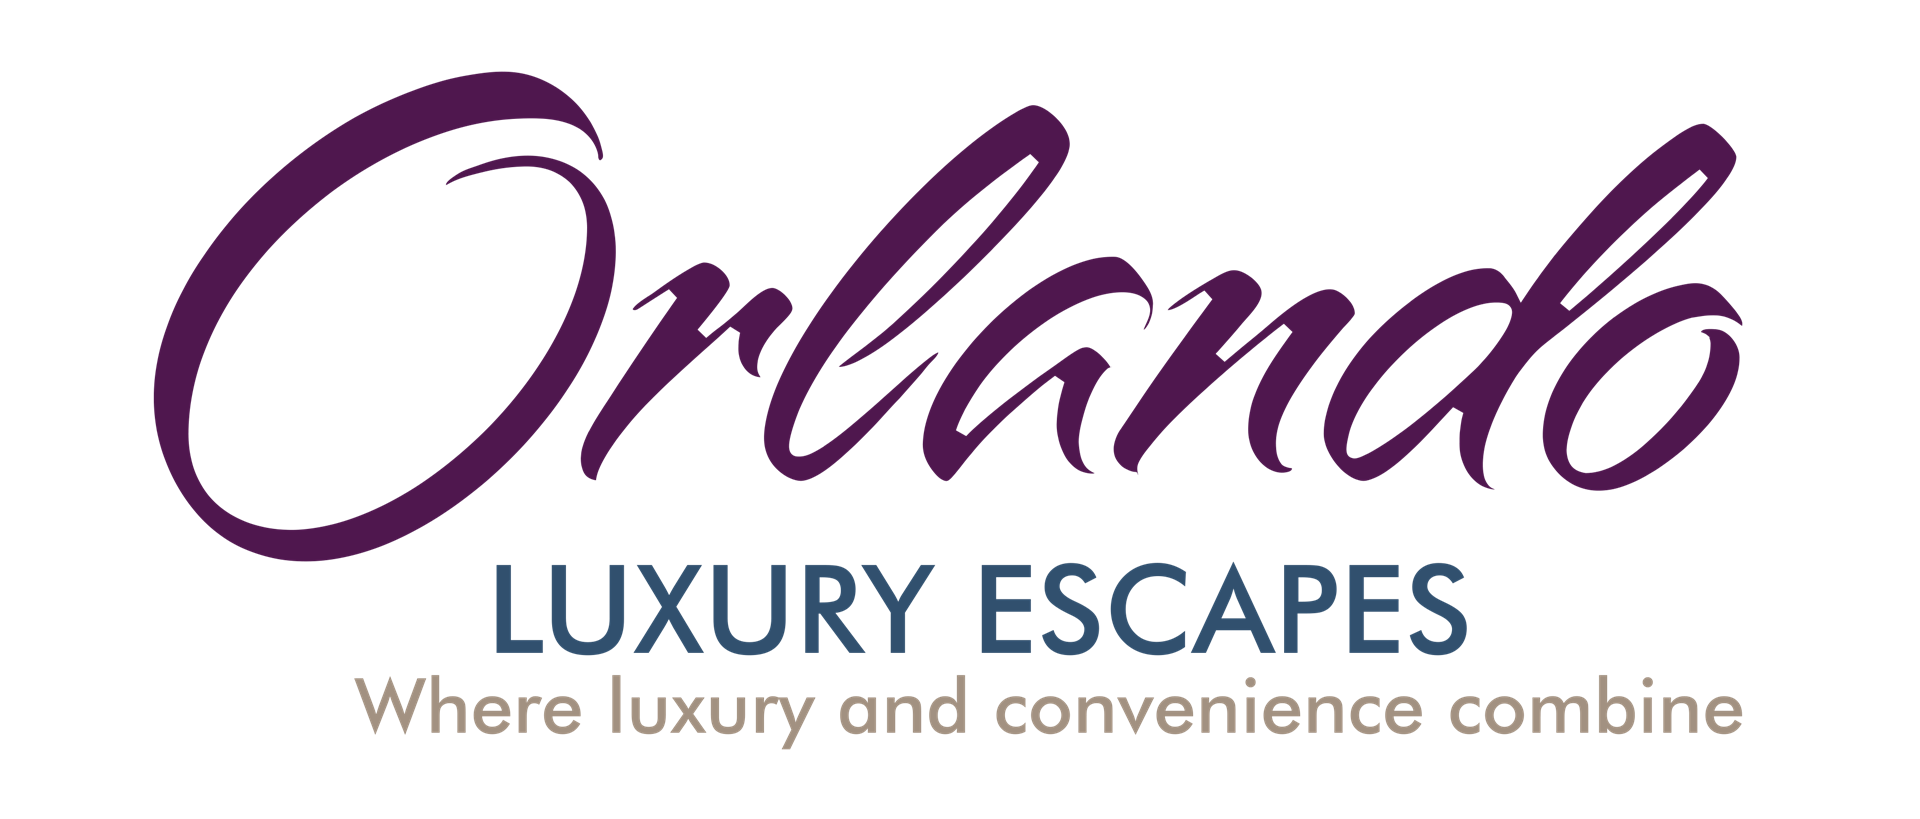 orlando luxury escapes.png